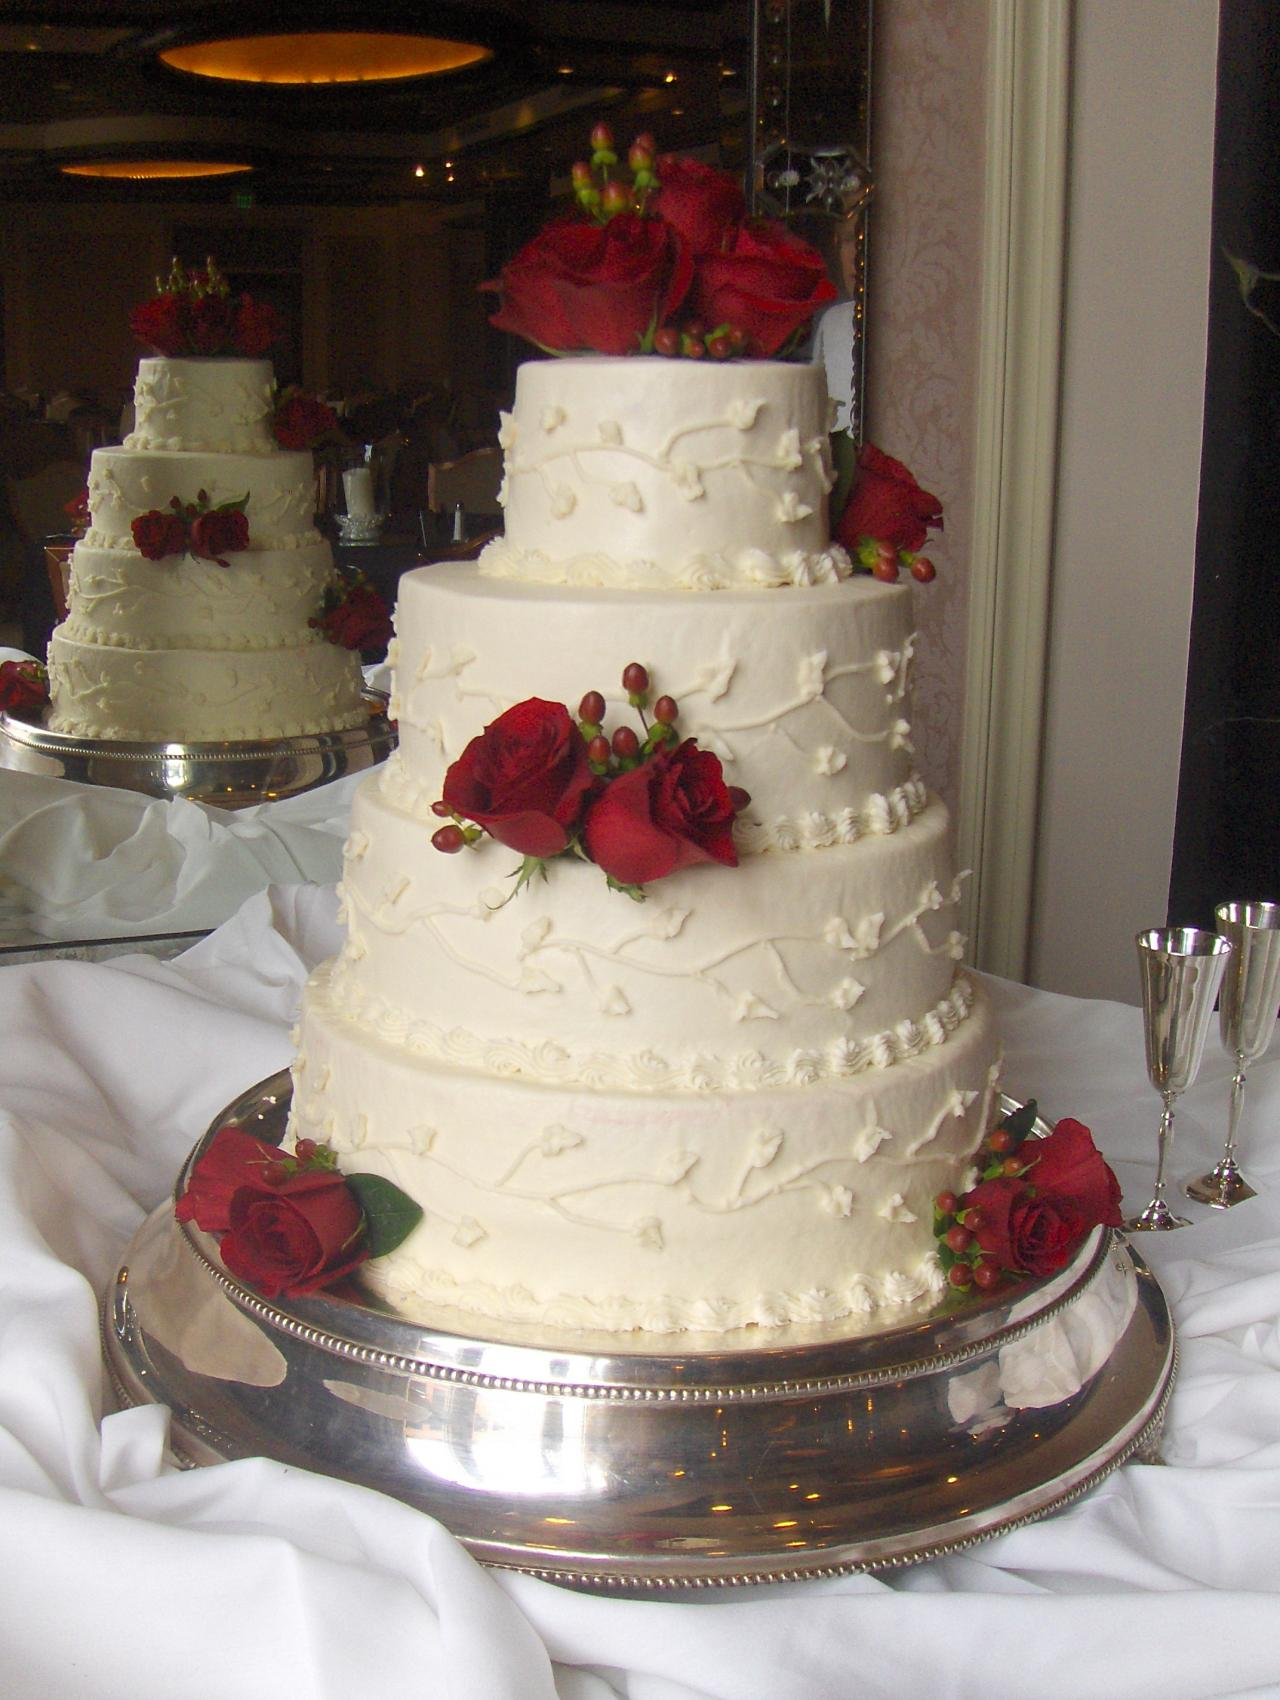 Embree House Wedding Cakes - Wedding Cakes Page 1